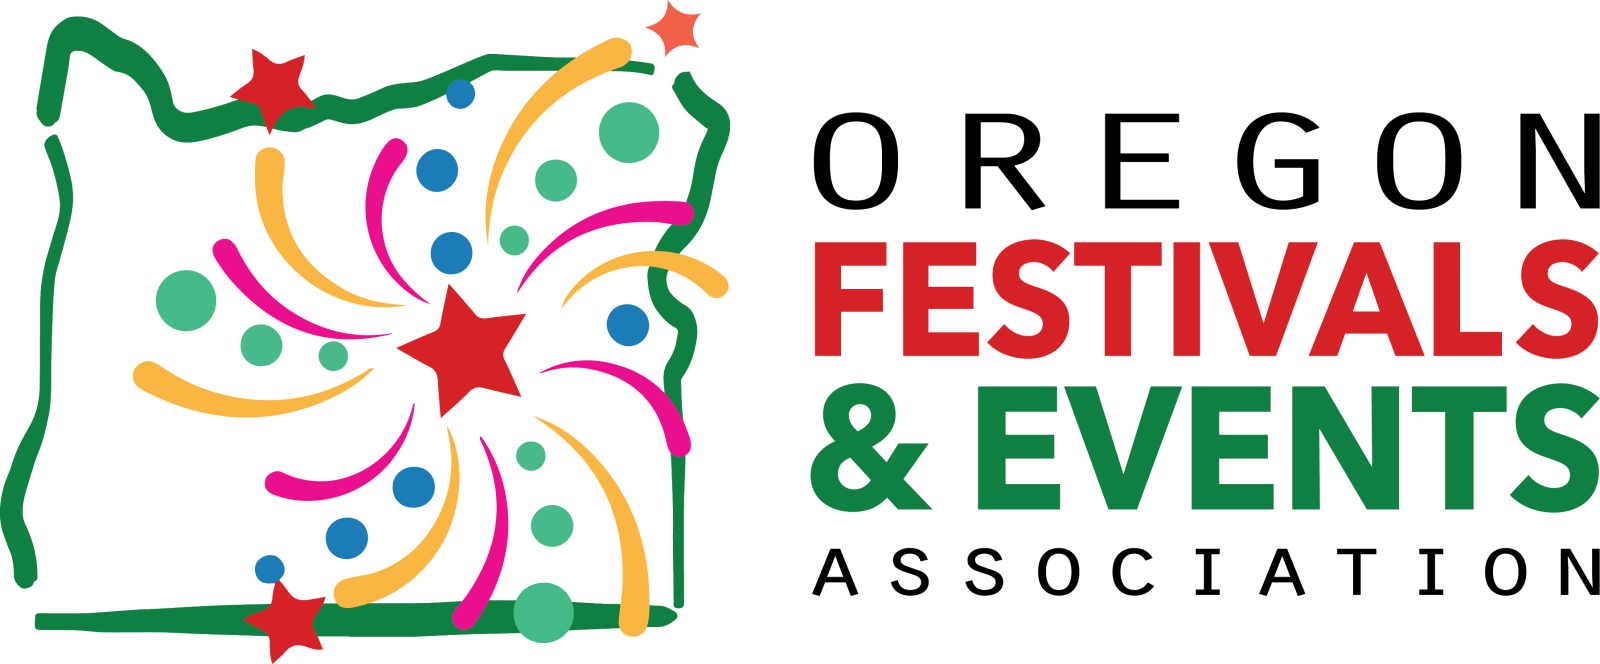 Oregon Festivals & Events Association